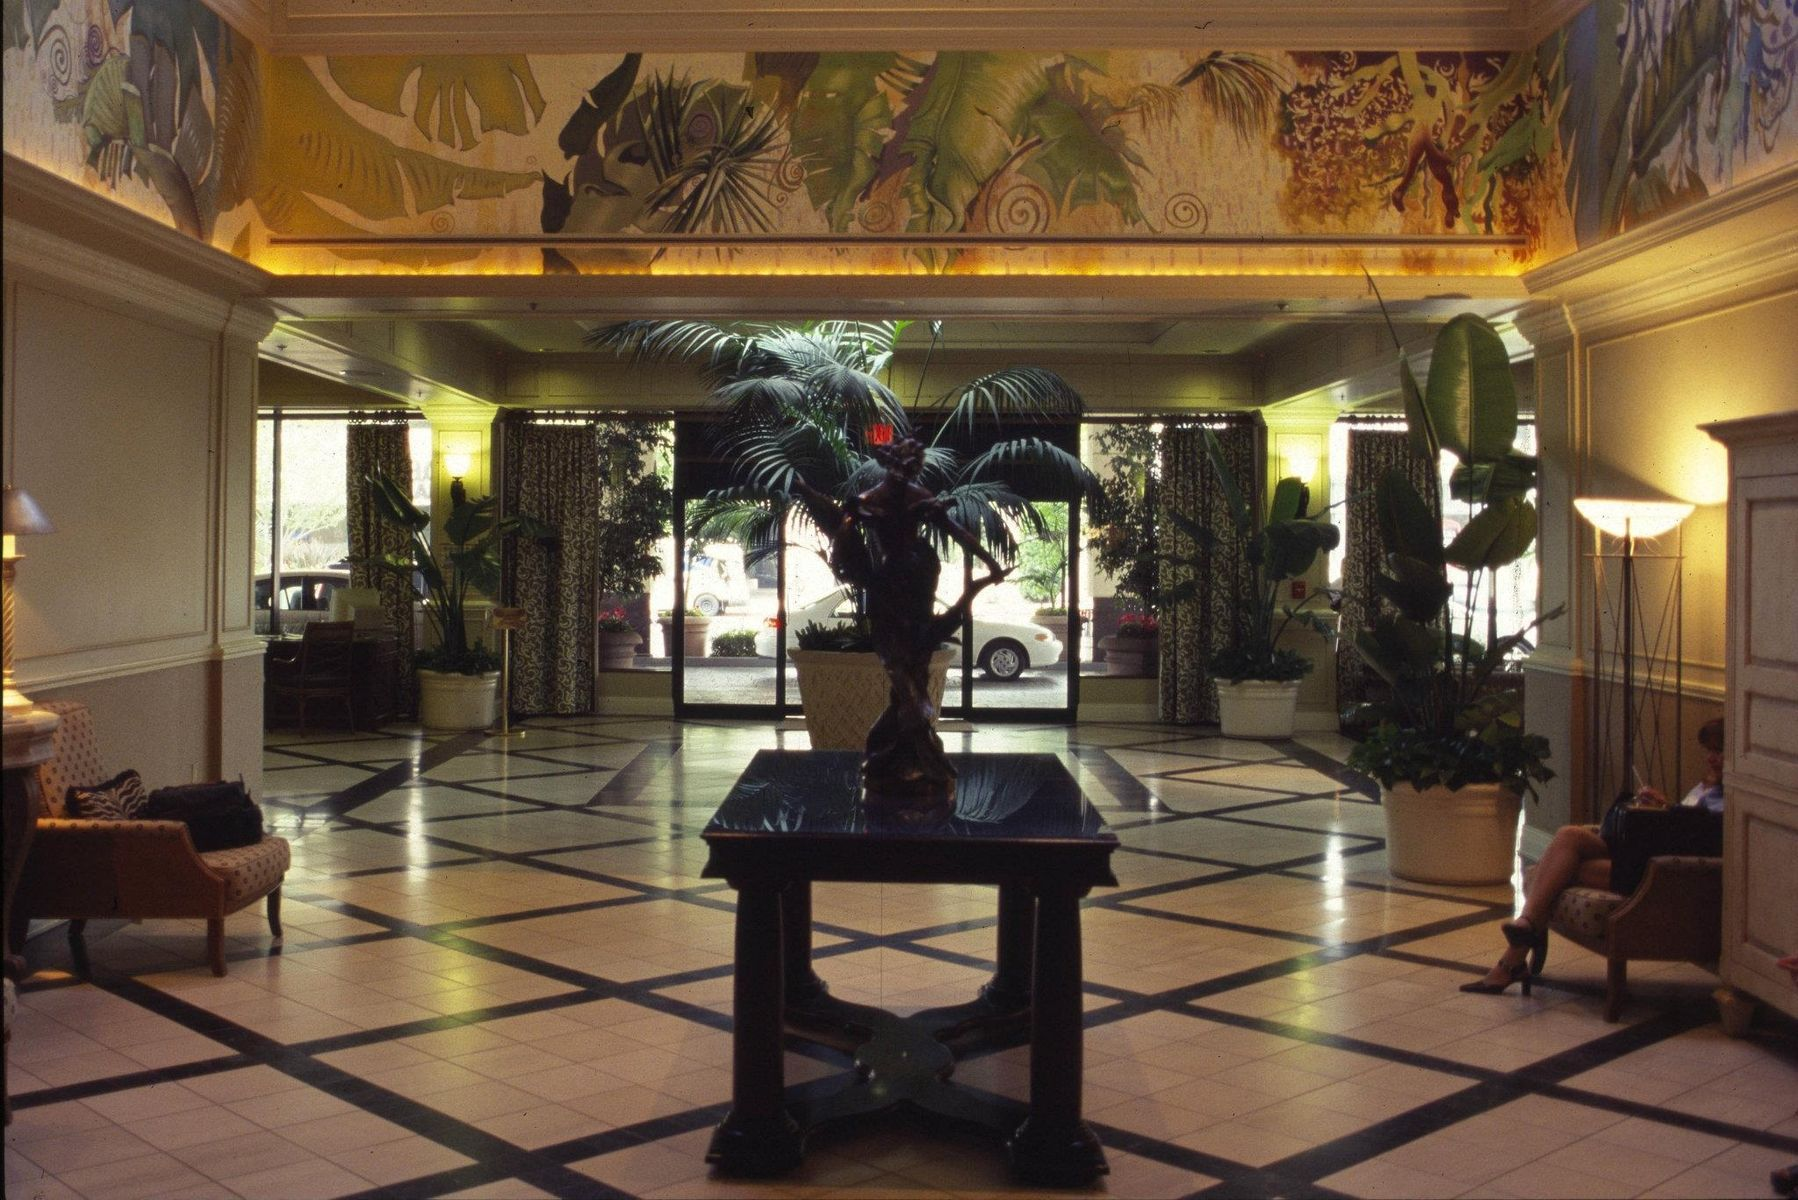 Handmade tropical art deco hotel lobby murals by mark for A for art design hotel